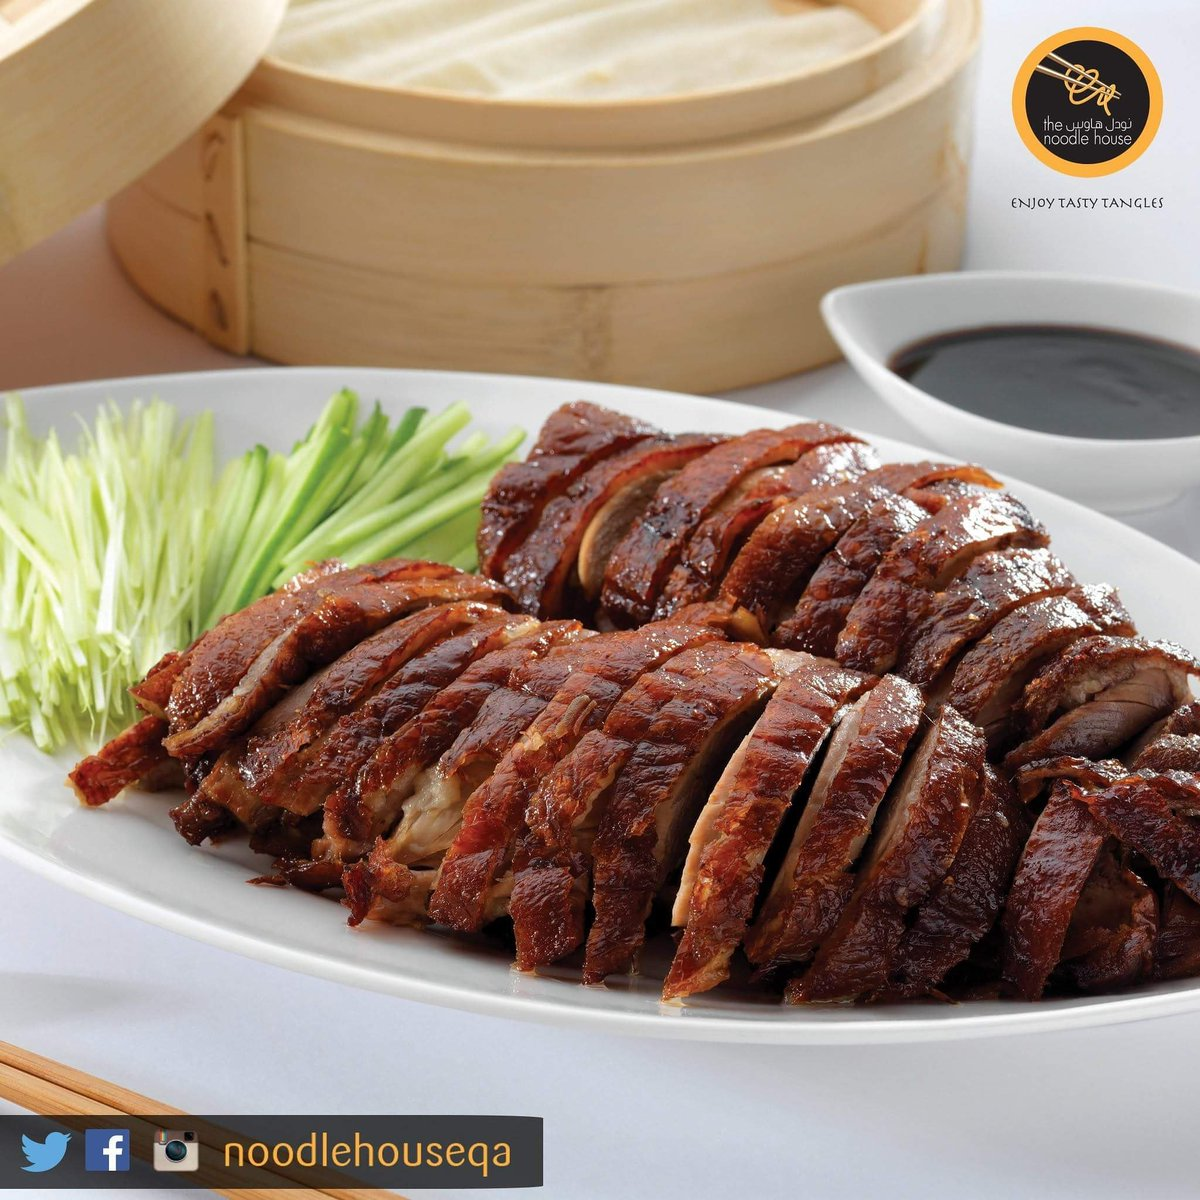 Come and try our Cantonese roasted duck with Hoisin sauce https://t.co/yqqW6iVYuo